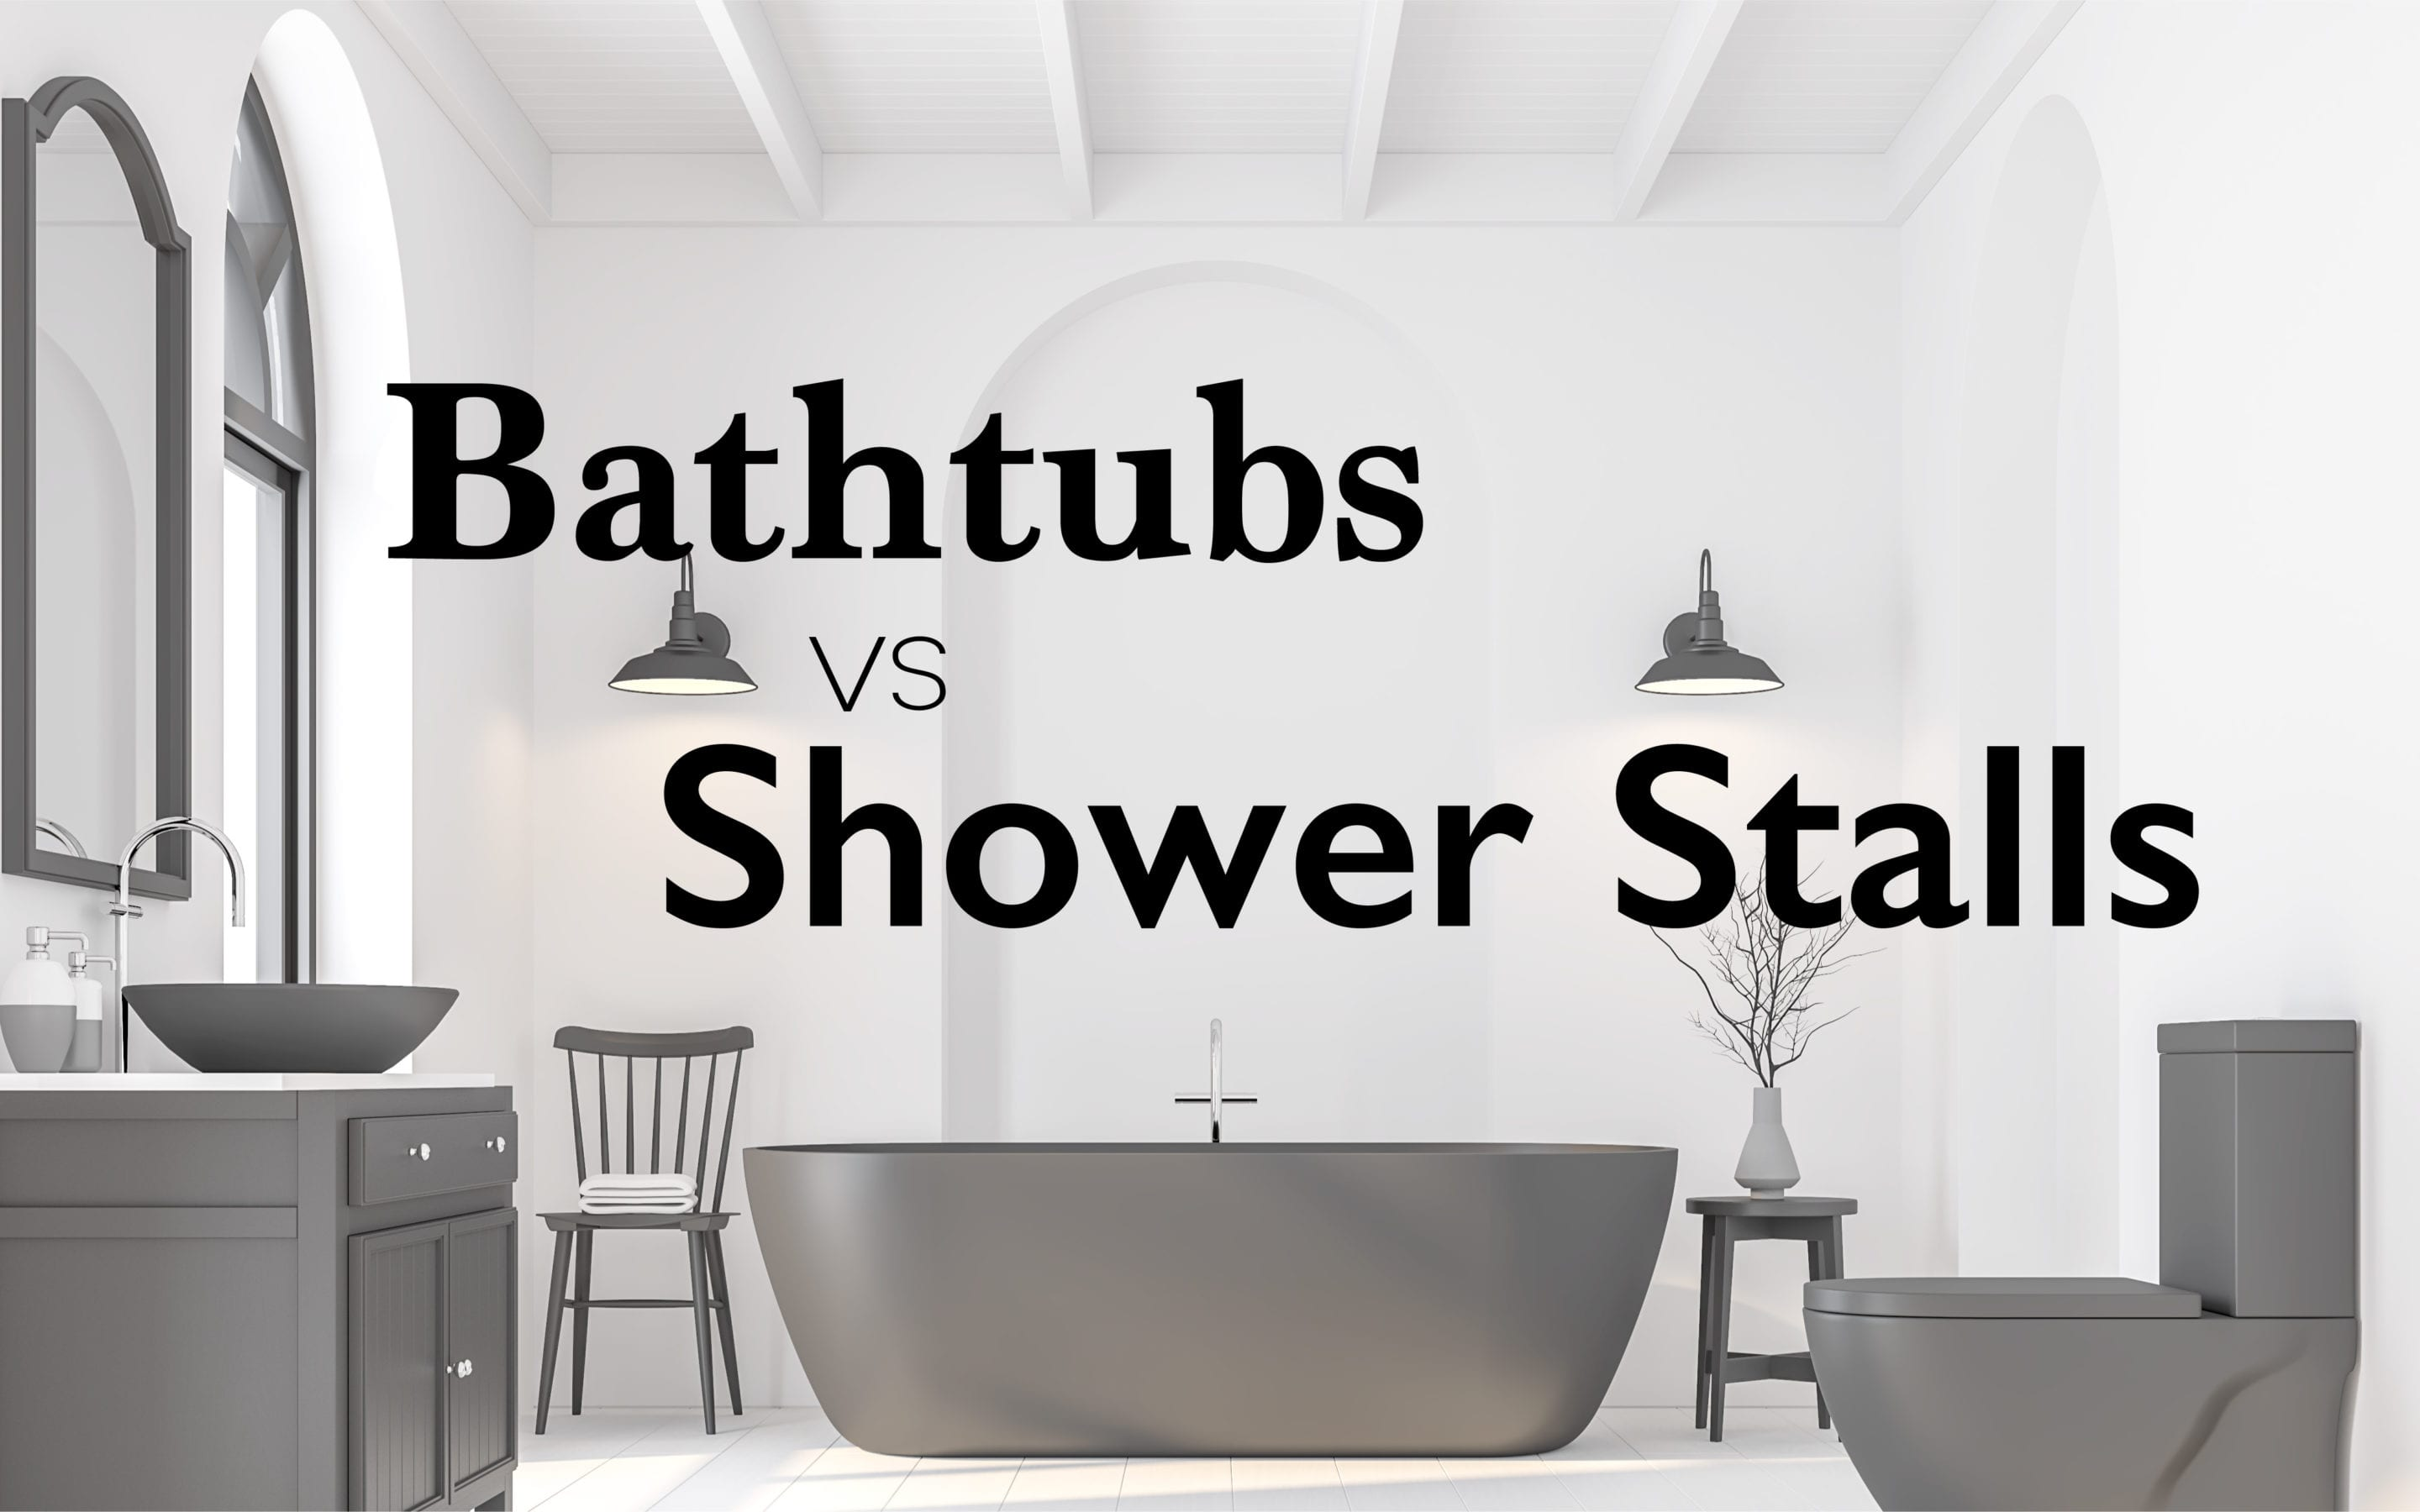 Tubs vs Shower Stalls: What is best for you?